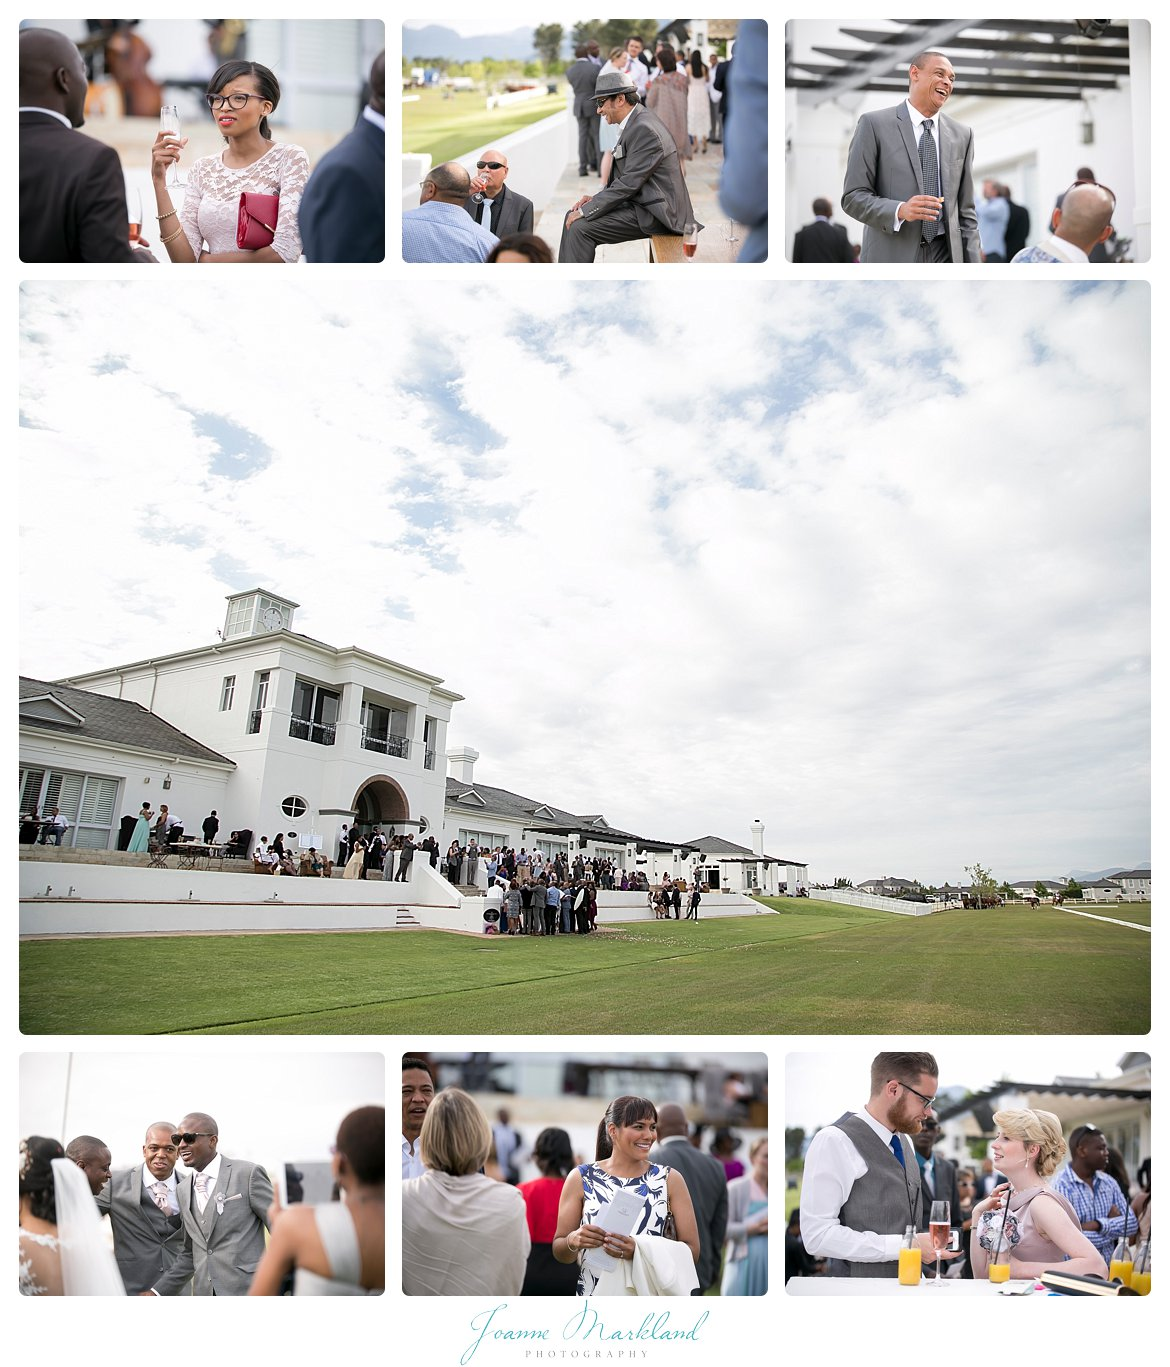 Val_de_vie_wedding_joanne_markland_photography_paarl-034